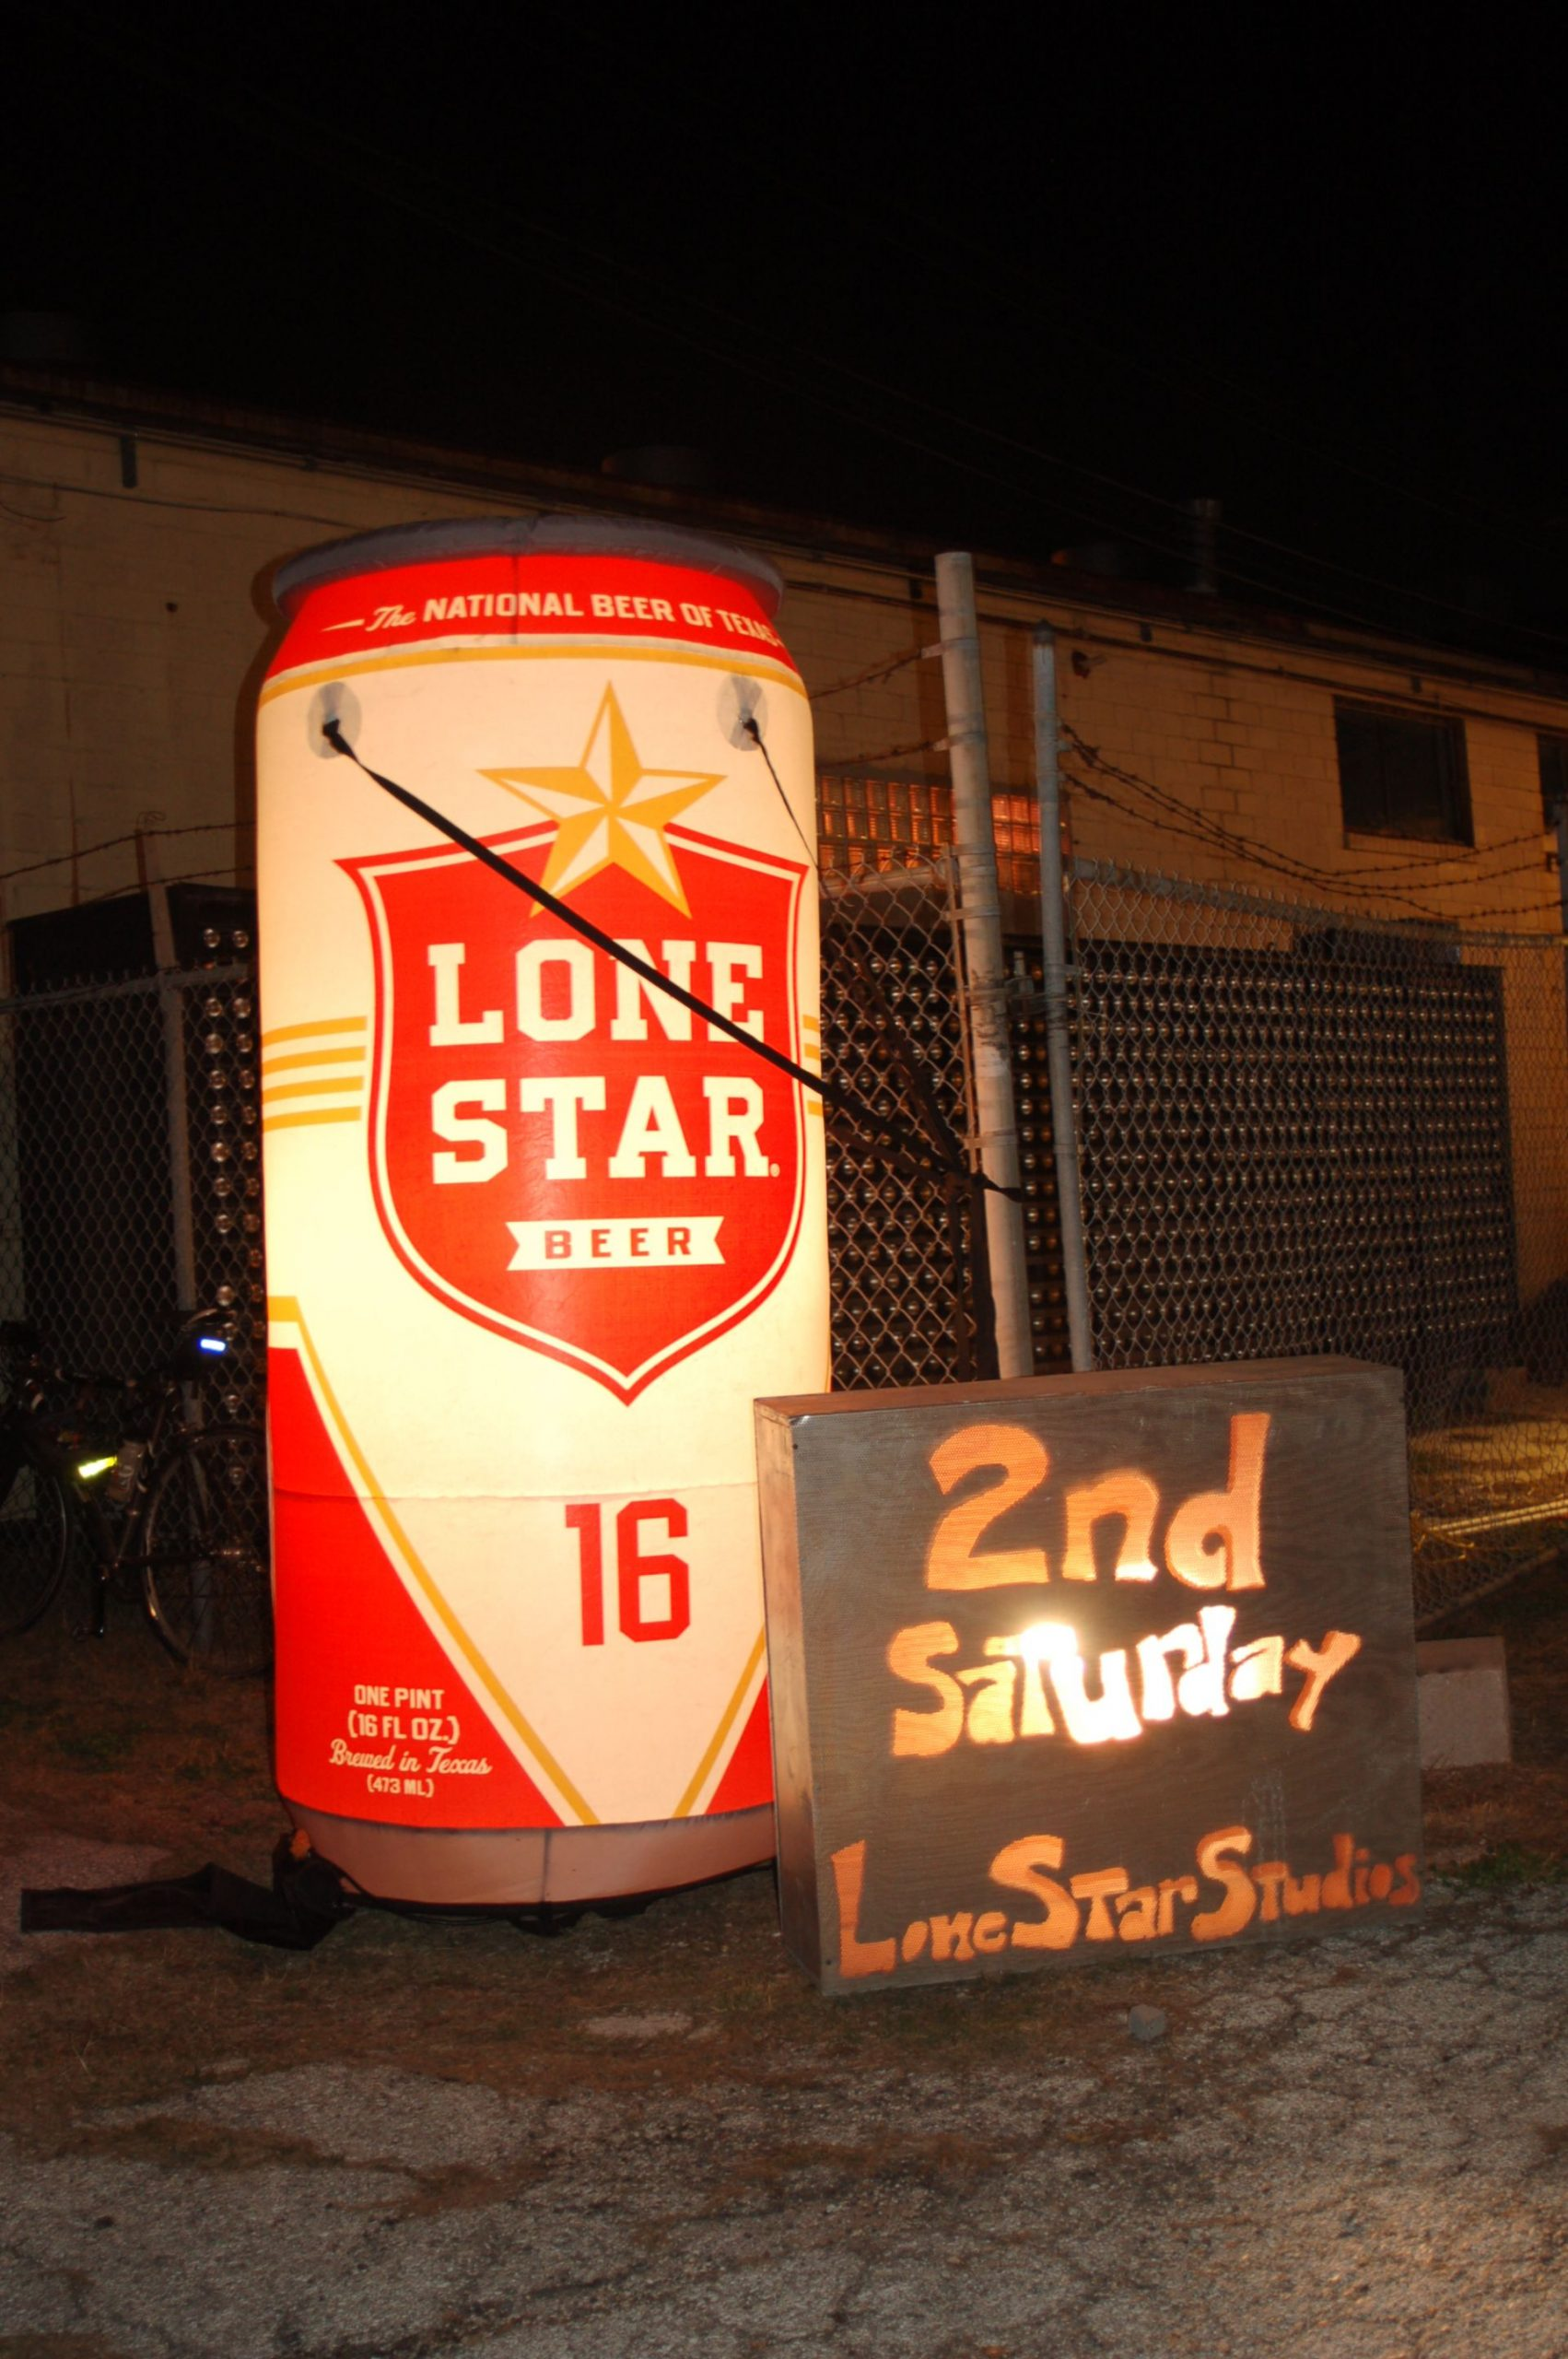 Second Saturday Art Walk at the corner of South Flores and Lone Star. Photo taken by Rene Jaime Gonzalez